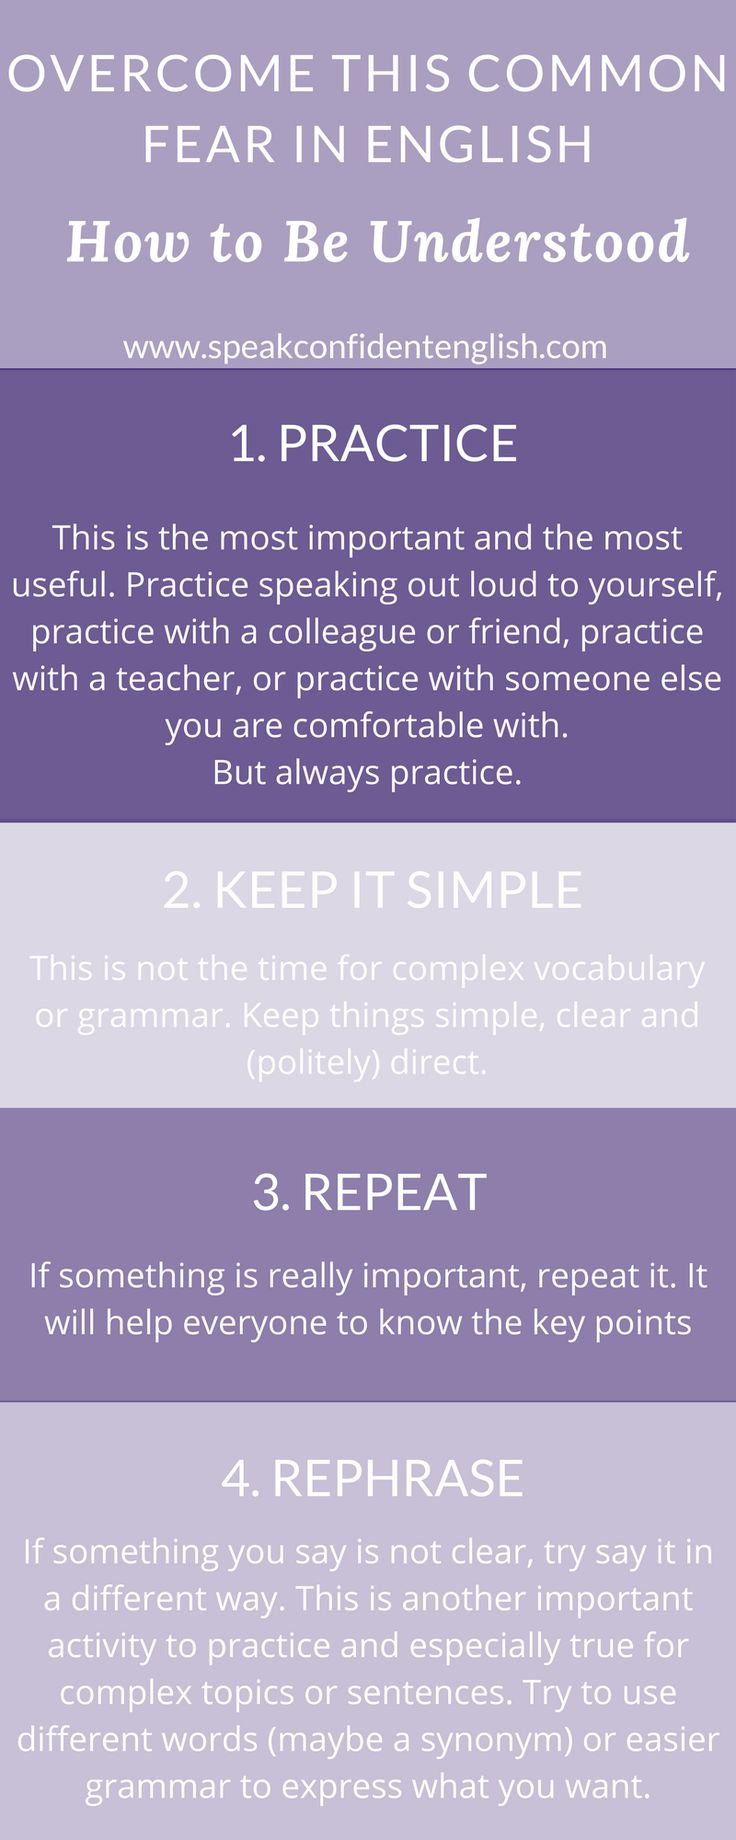 Do you always feel afraid and nervous to speak in English? Do you worry someone won't understand you? Afraid to make mistakes? Use these simple tips to overcome the fear of being misunderstood in English. And learn more at: http://www.speakconfidentenglish.com/conquer-english-fears/?utm_campaign=coschedule&utm_source=pinterest&utm_medium=Speak%20Confident%20English%20%7C%20English%20Fluency%20Trainer&utm_content=How%20to%20Conquer%203%20Common%20Fears%20When%20Speaking%20English